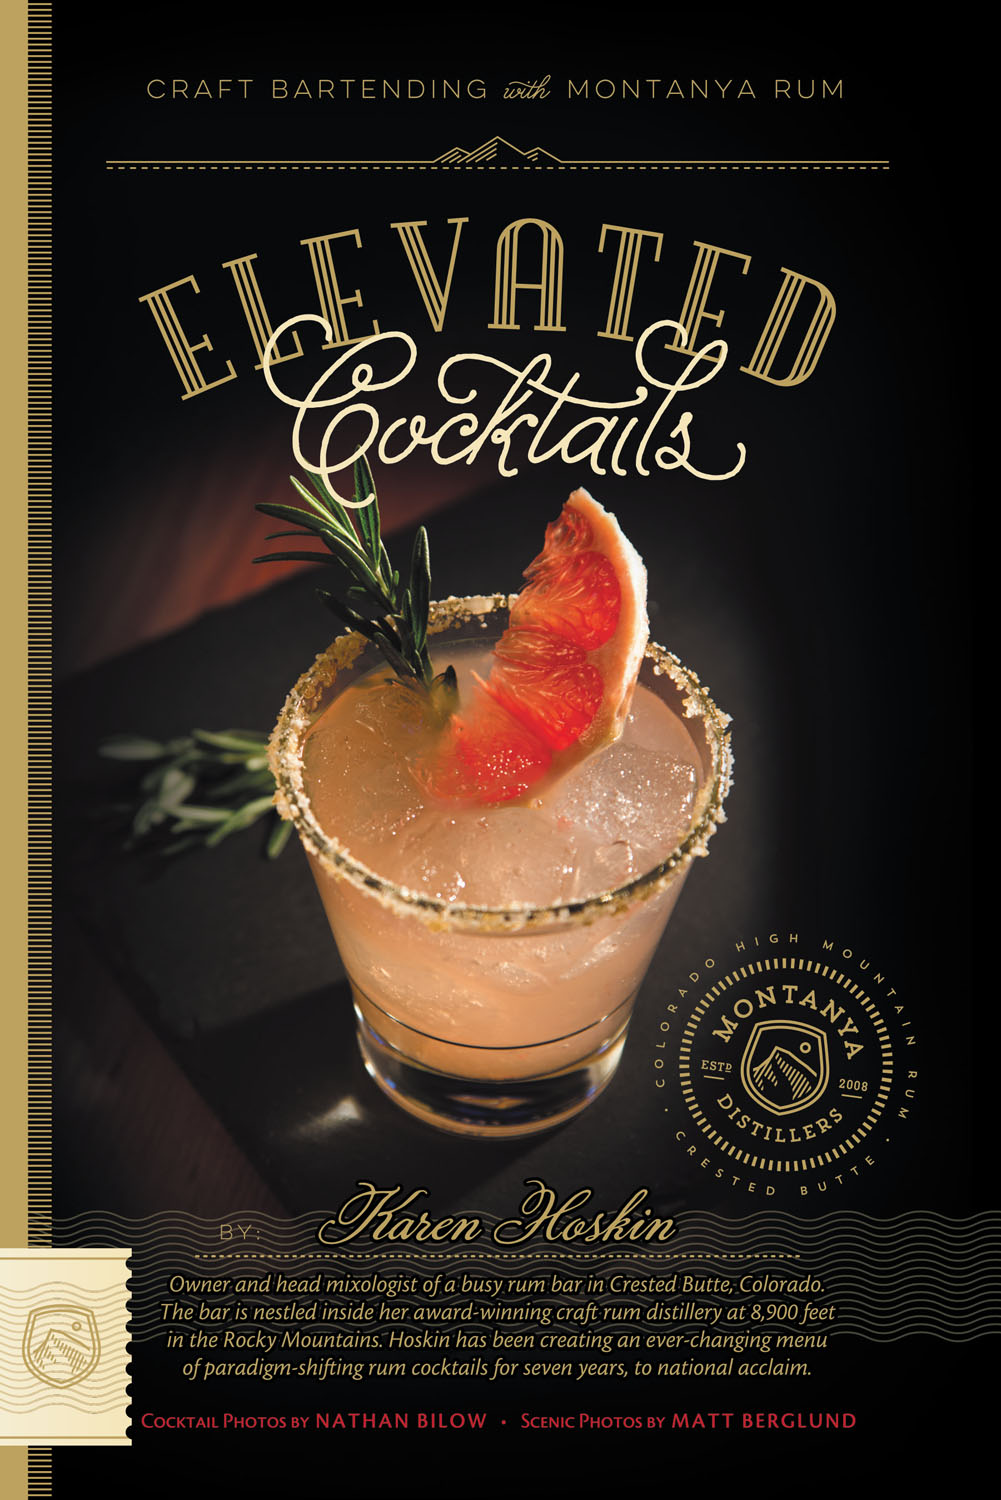 The cover of cocktail recipe book Elevated Cocktails: Craft Bartending with Montanya Rum, featuring a picture of the Salty Dog rum cocktail.